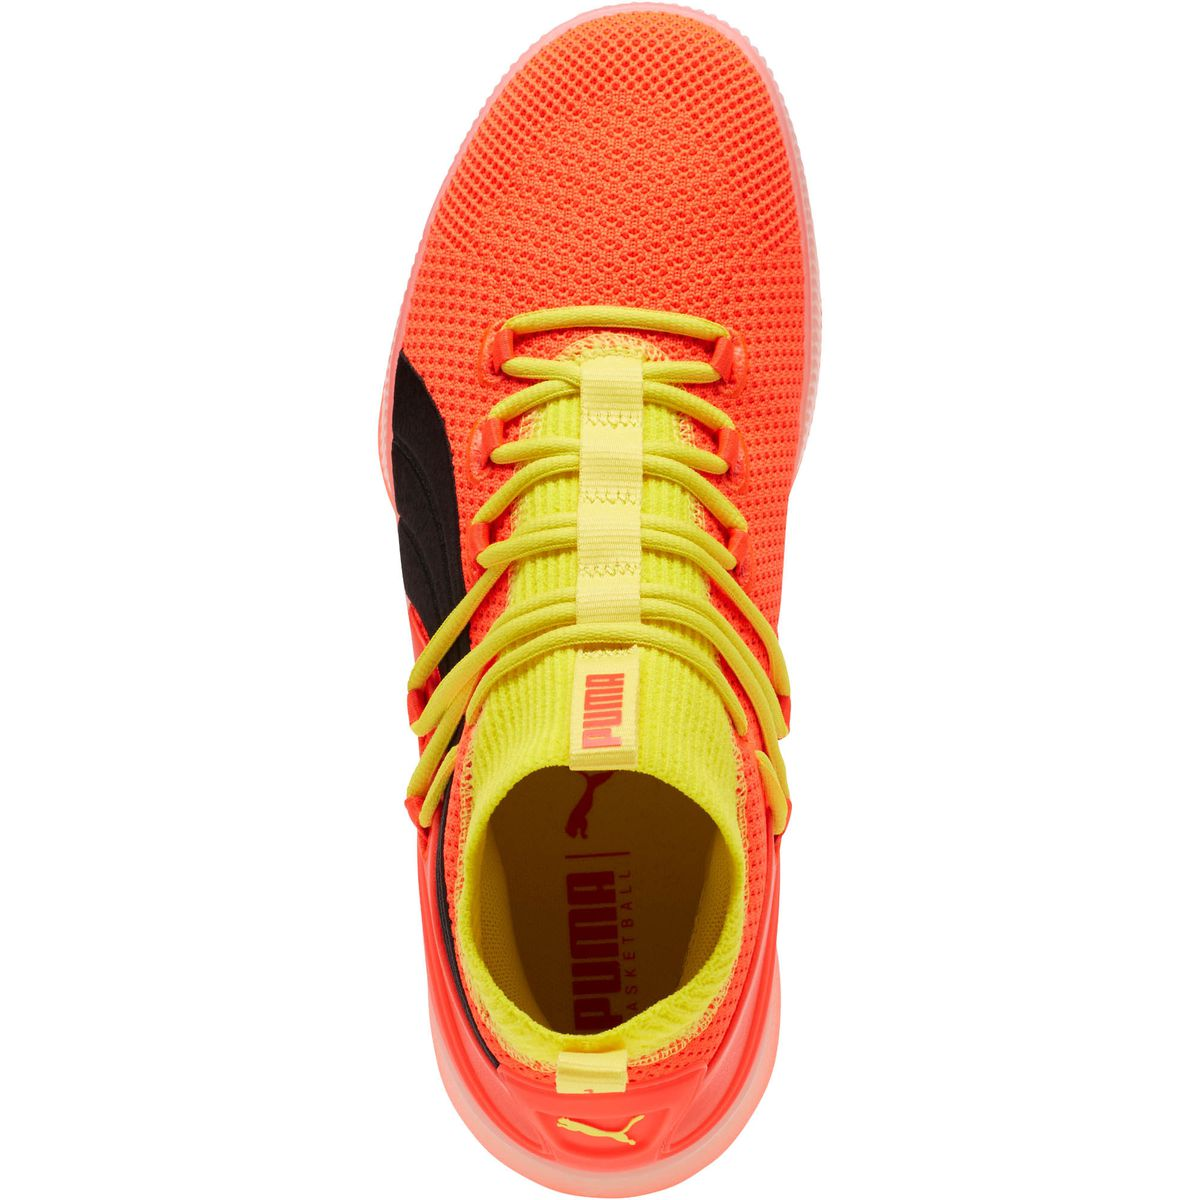 582b9deaf8fa Puma s Clyde Court Disrupt basketball shoe drops just in time for ...